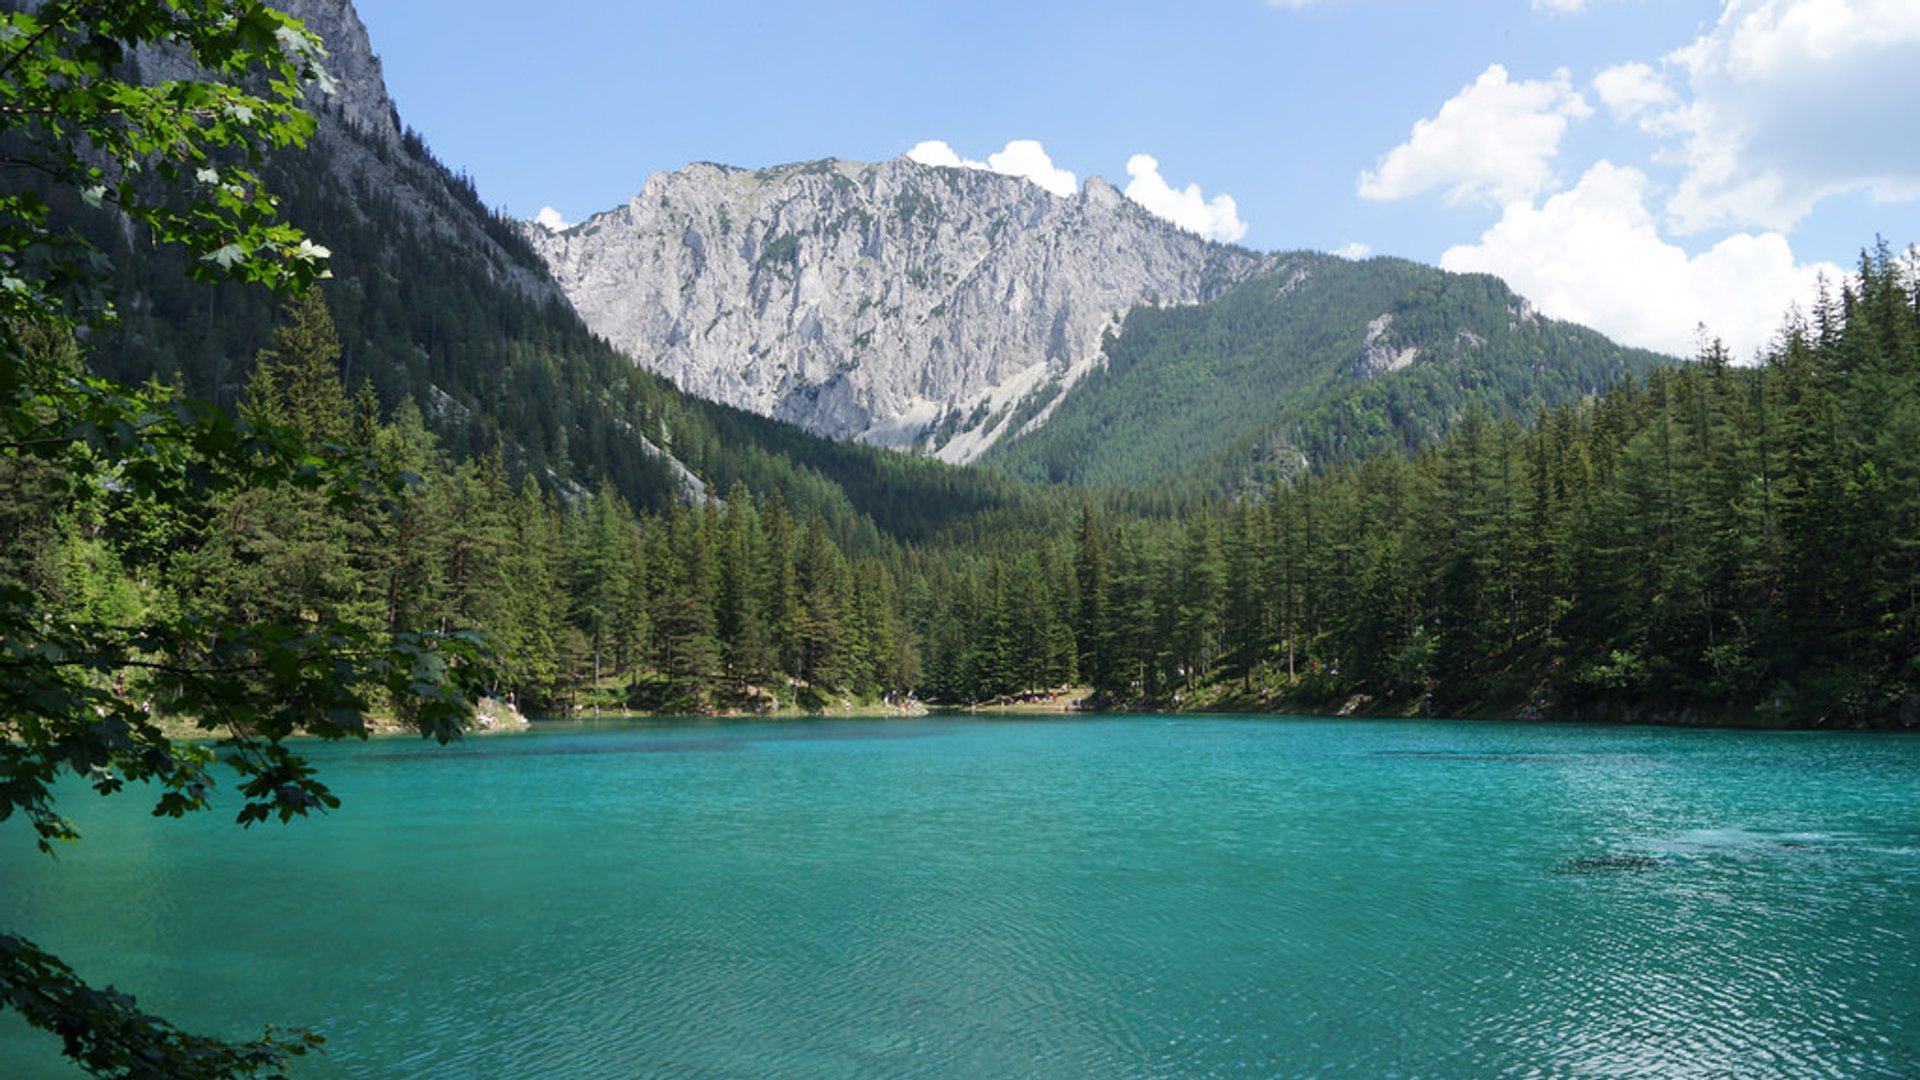 Green Lake Park in Austria 2020 - Best Time